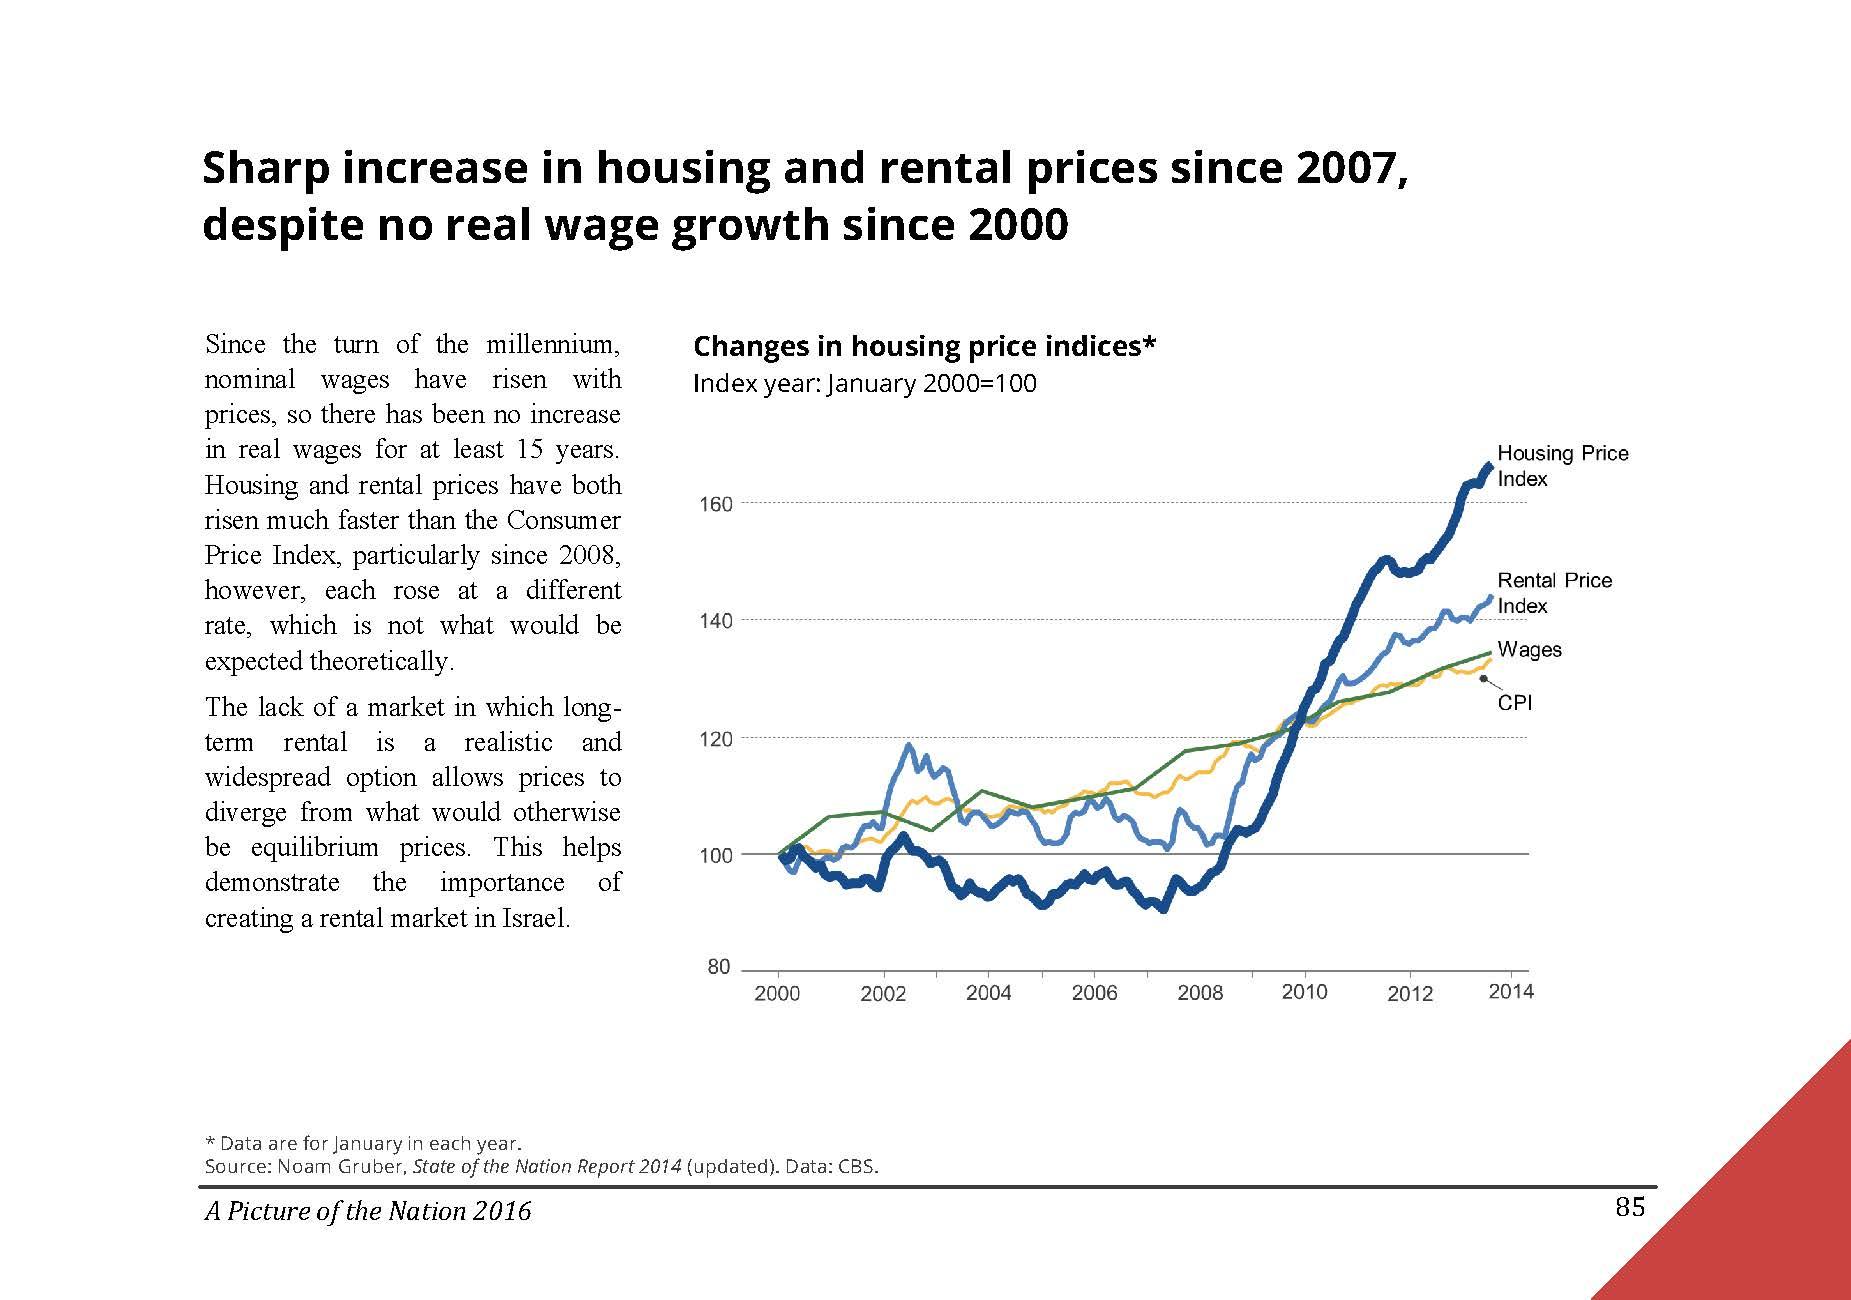 Sharp increase in housing and rental prices since 2007, despite no real wage growth since 2000 in Israel